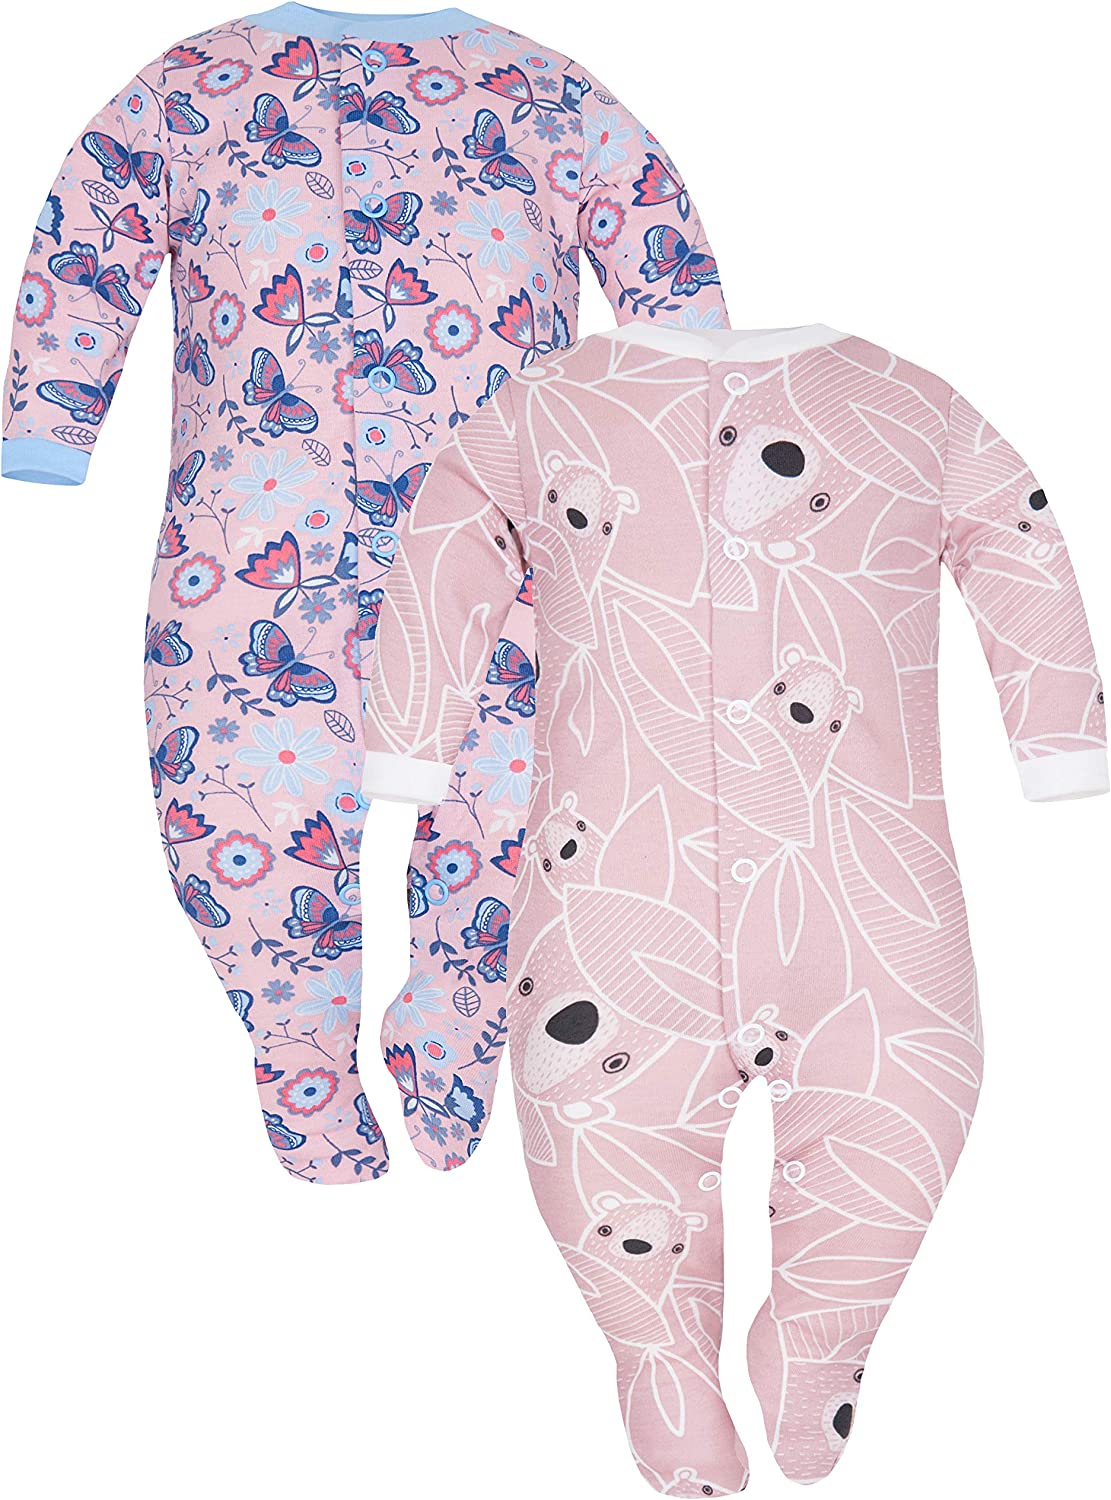 Sizes 9-24 Months Pack of 2 SIBINULO Baby Boys Baby Girls Sleepsuit with ABS Mix